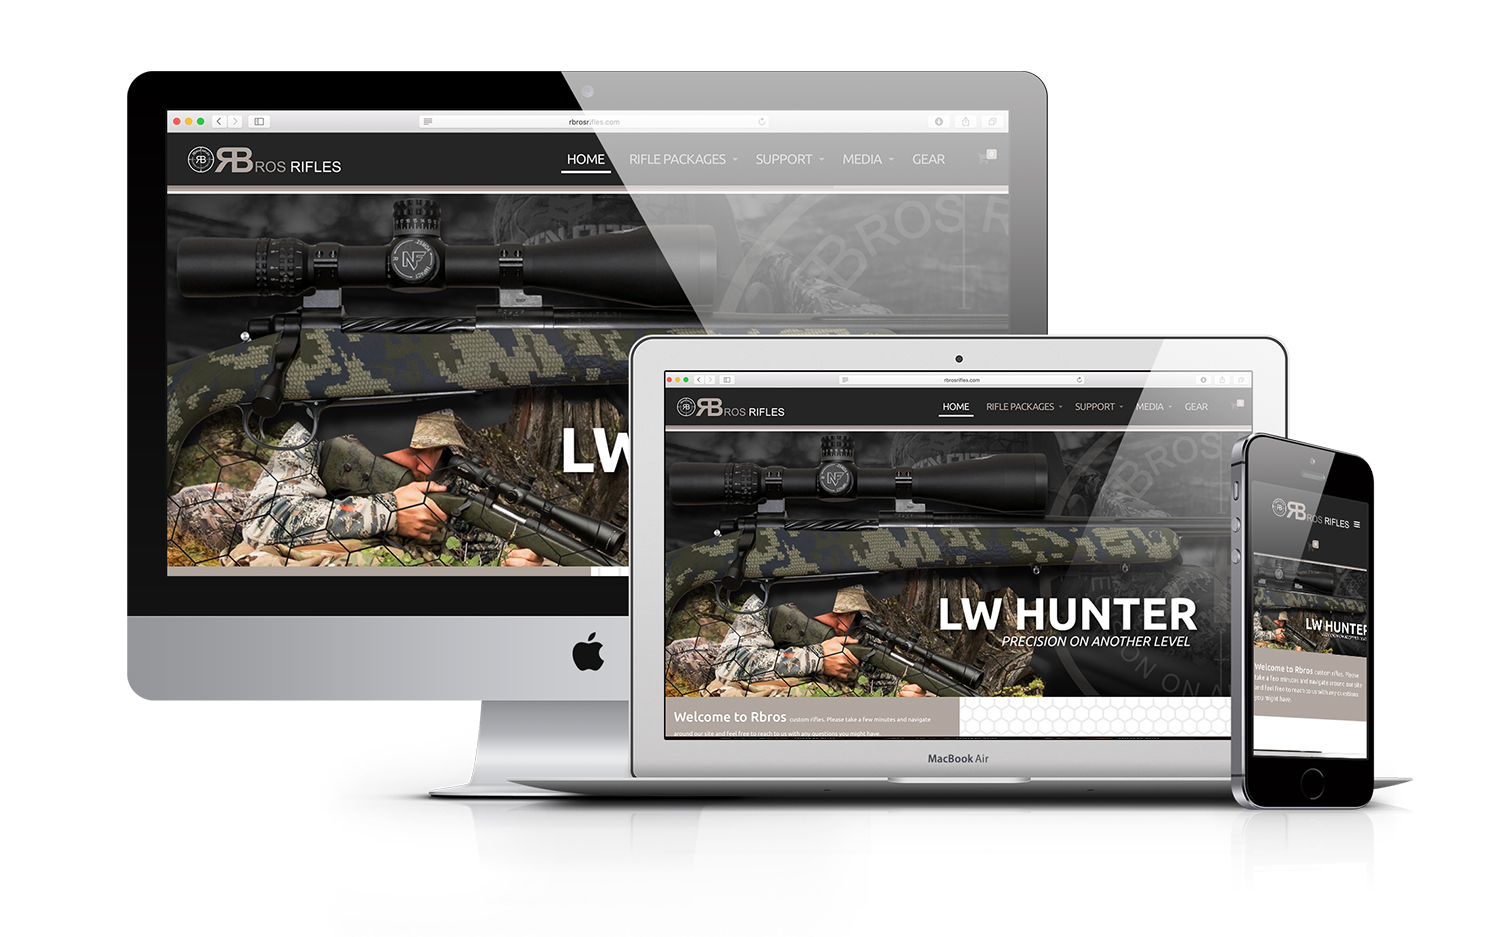 Rbros Rifles Competition Hunting Website Design